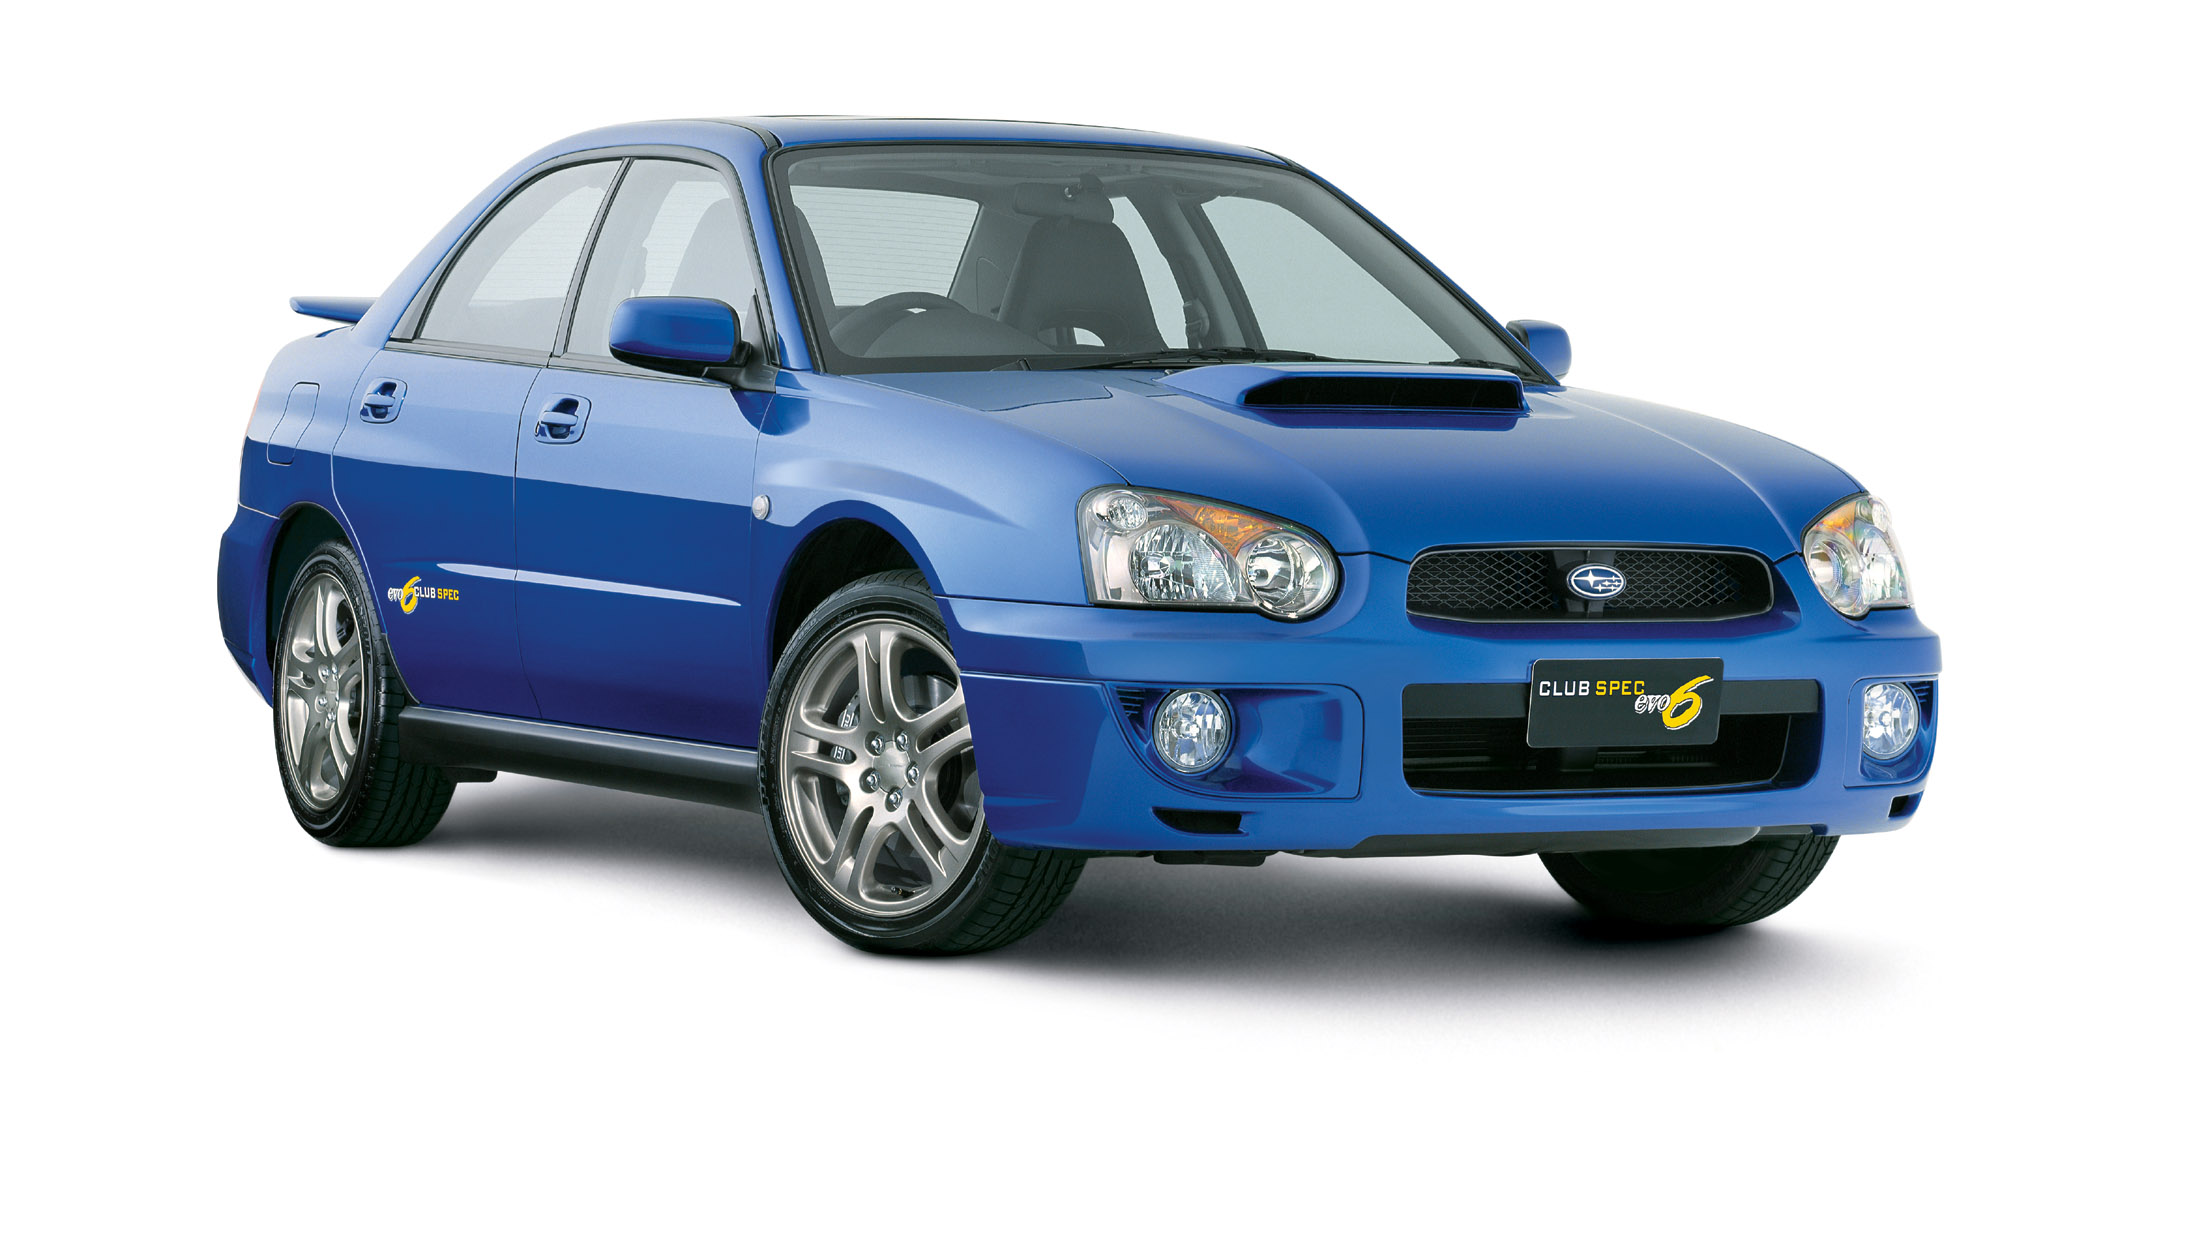 The Subaru Wrx Club Spec Is Back And Its Wild Plus The